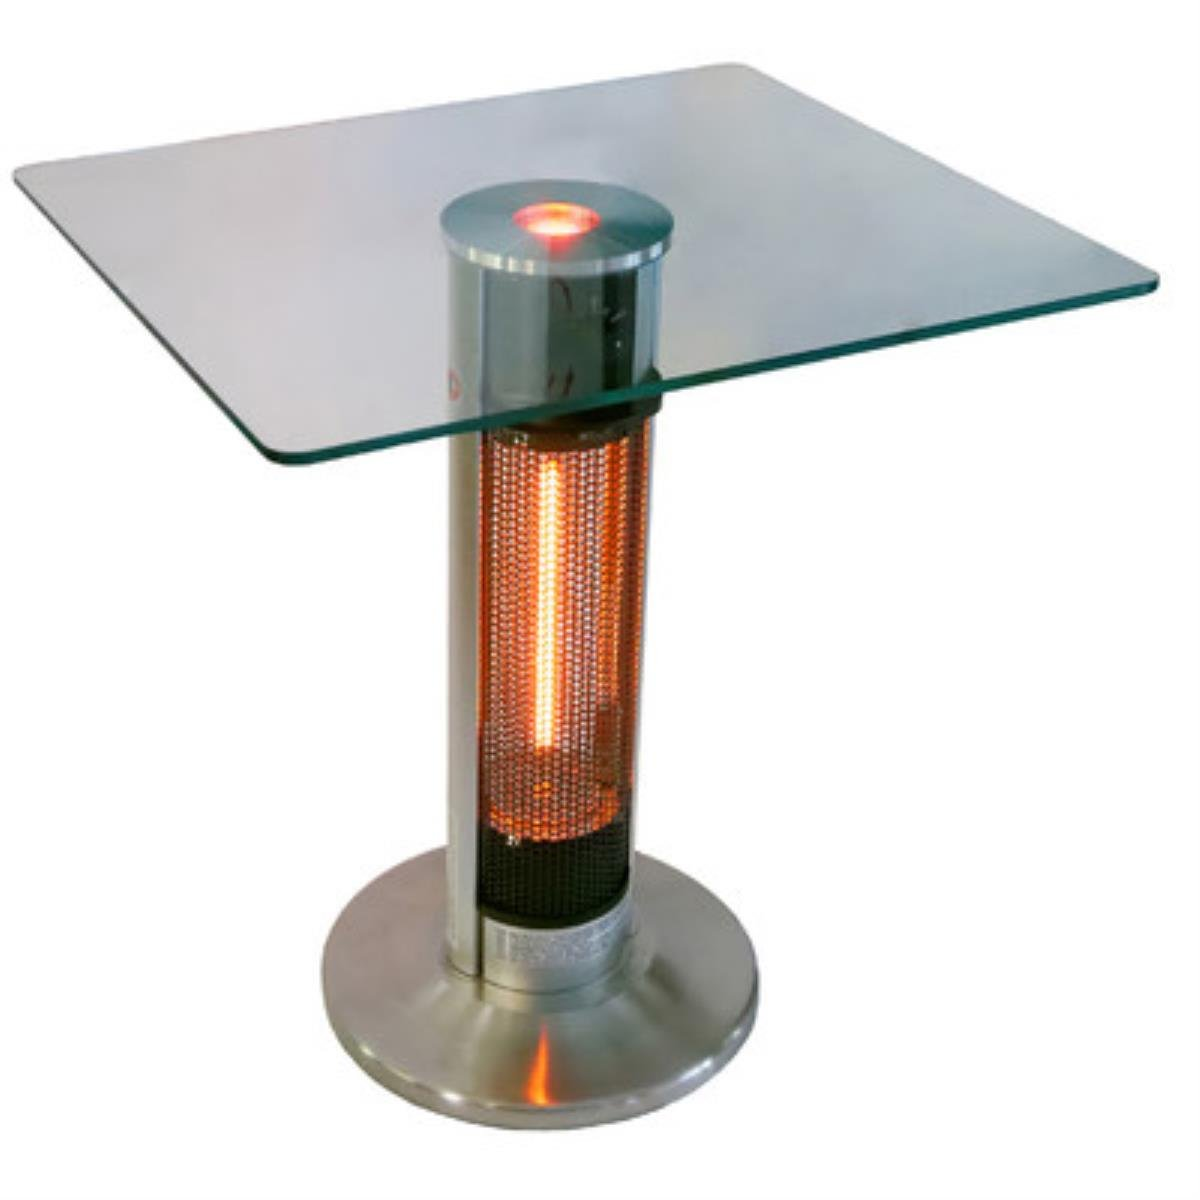 4,760 BTU Portable Electric Infrared Tower Heater with LED Lights